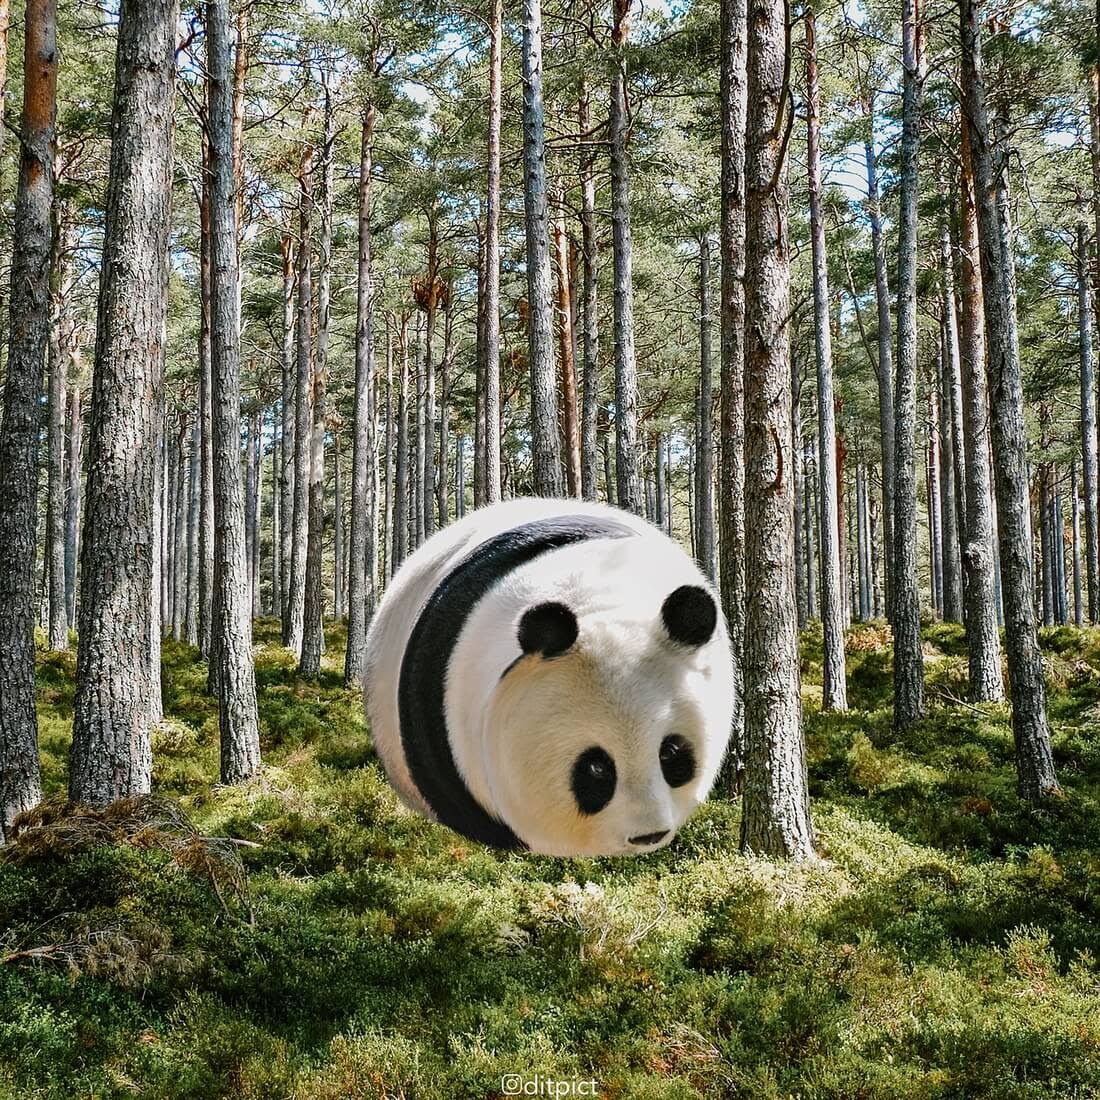 06-Panda-Aditya-Aryanto-Surreal-Animals-Ball-Photo-Manipulations-www-designstack-co